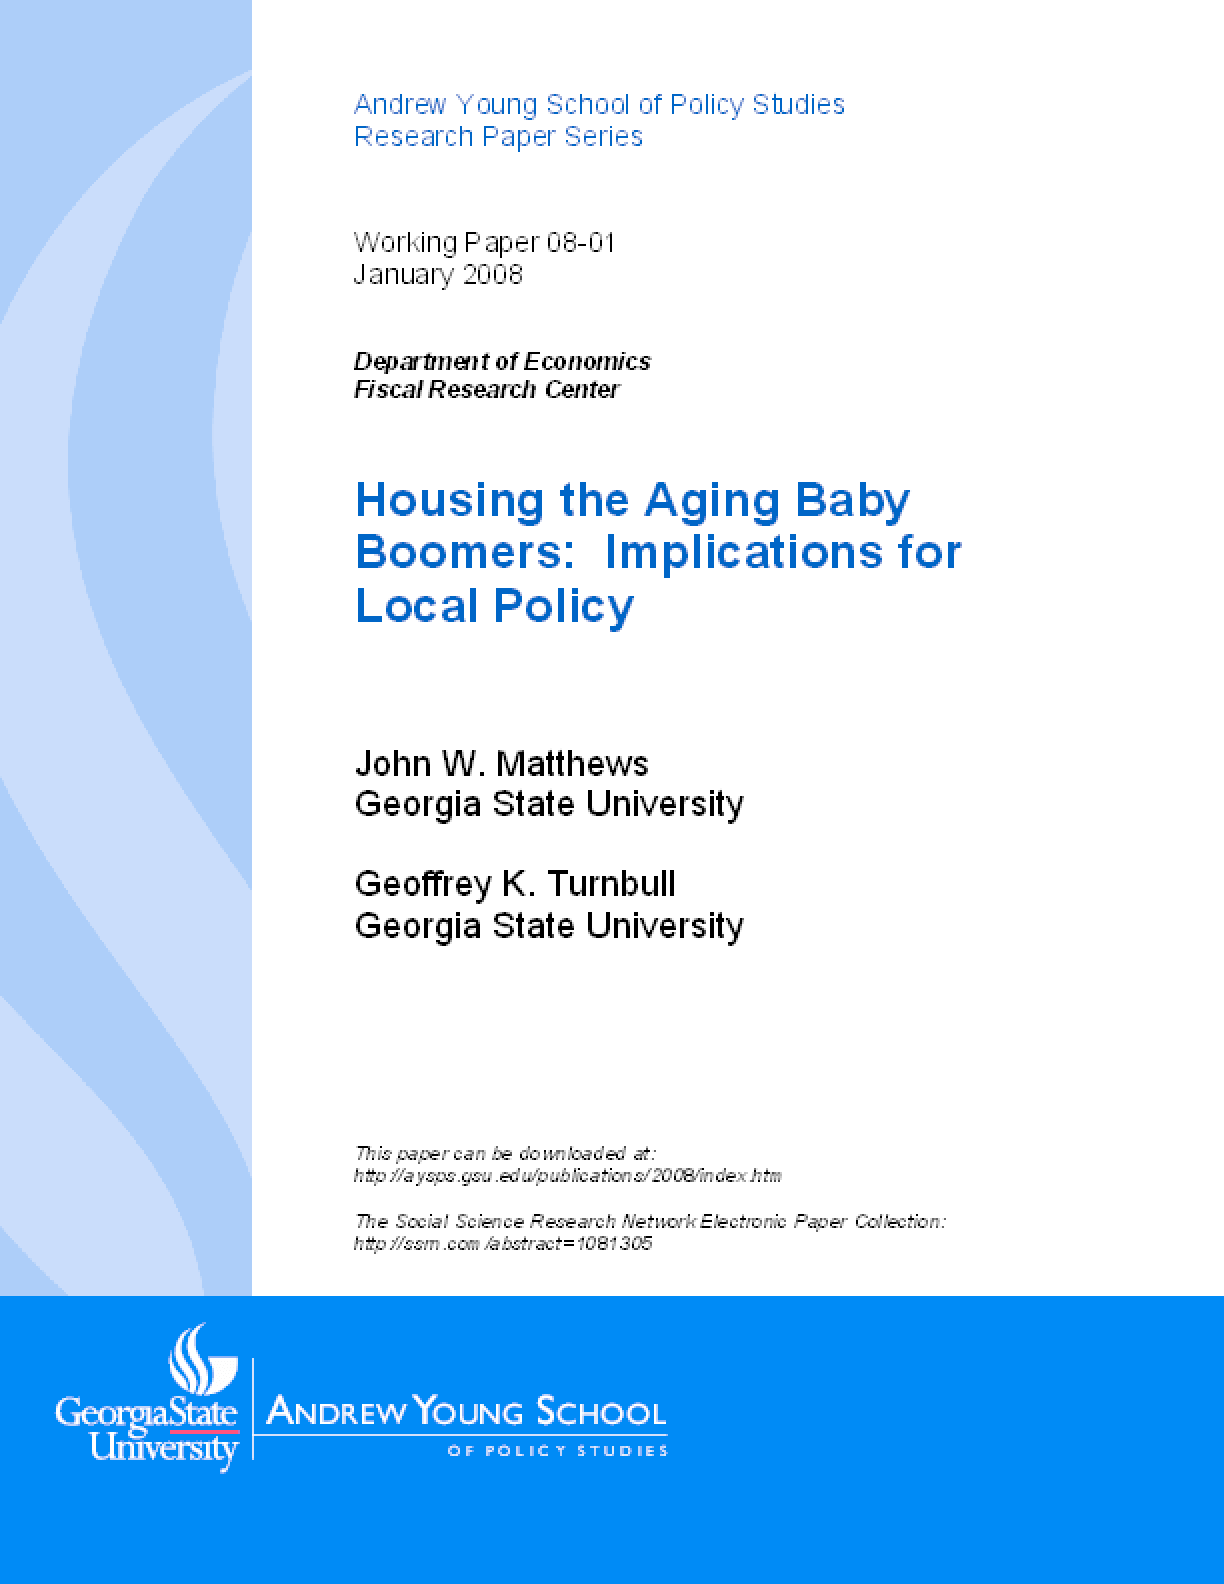 Housing the Aging Baby Boomers: Implications for Local Policy